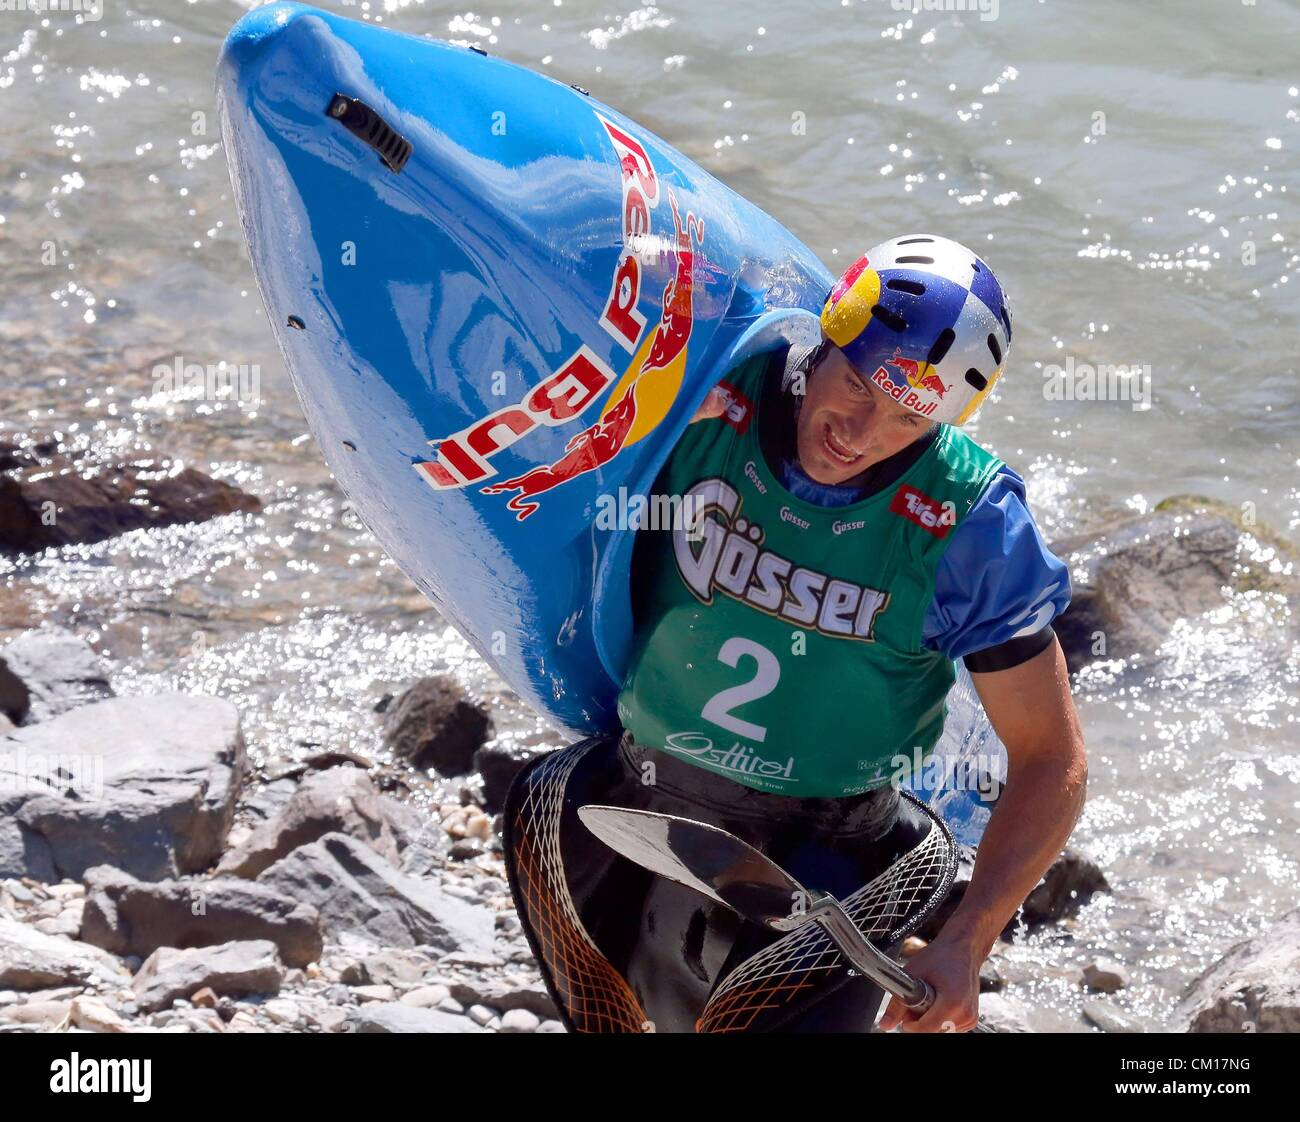 Extreme Sports: Red Bull Athletes Stock Photos & Red Bull Athletes Stock